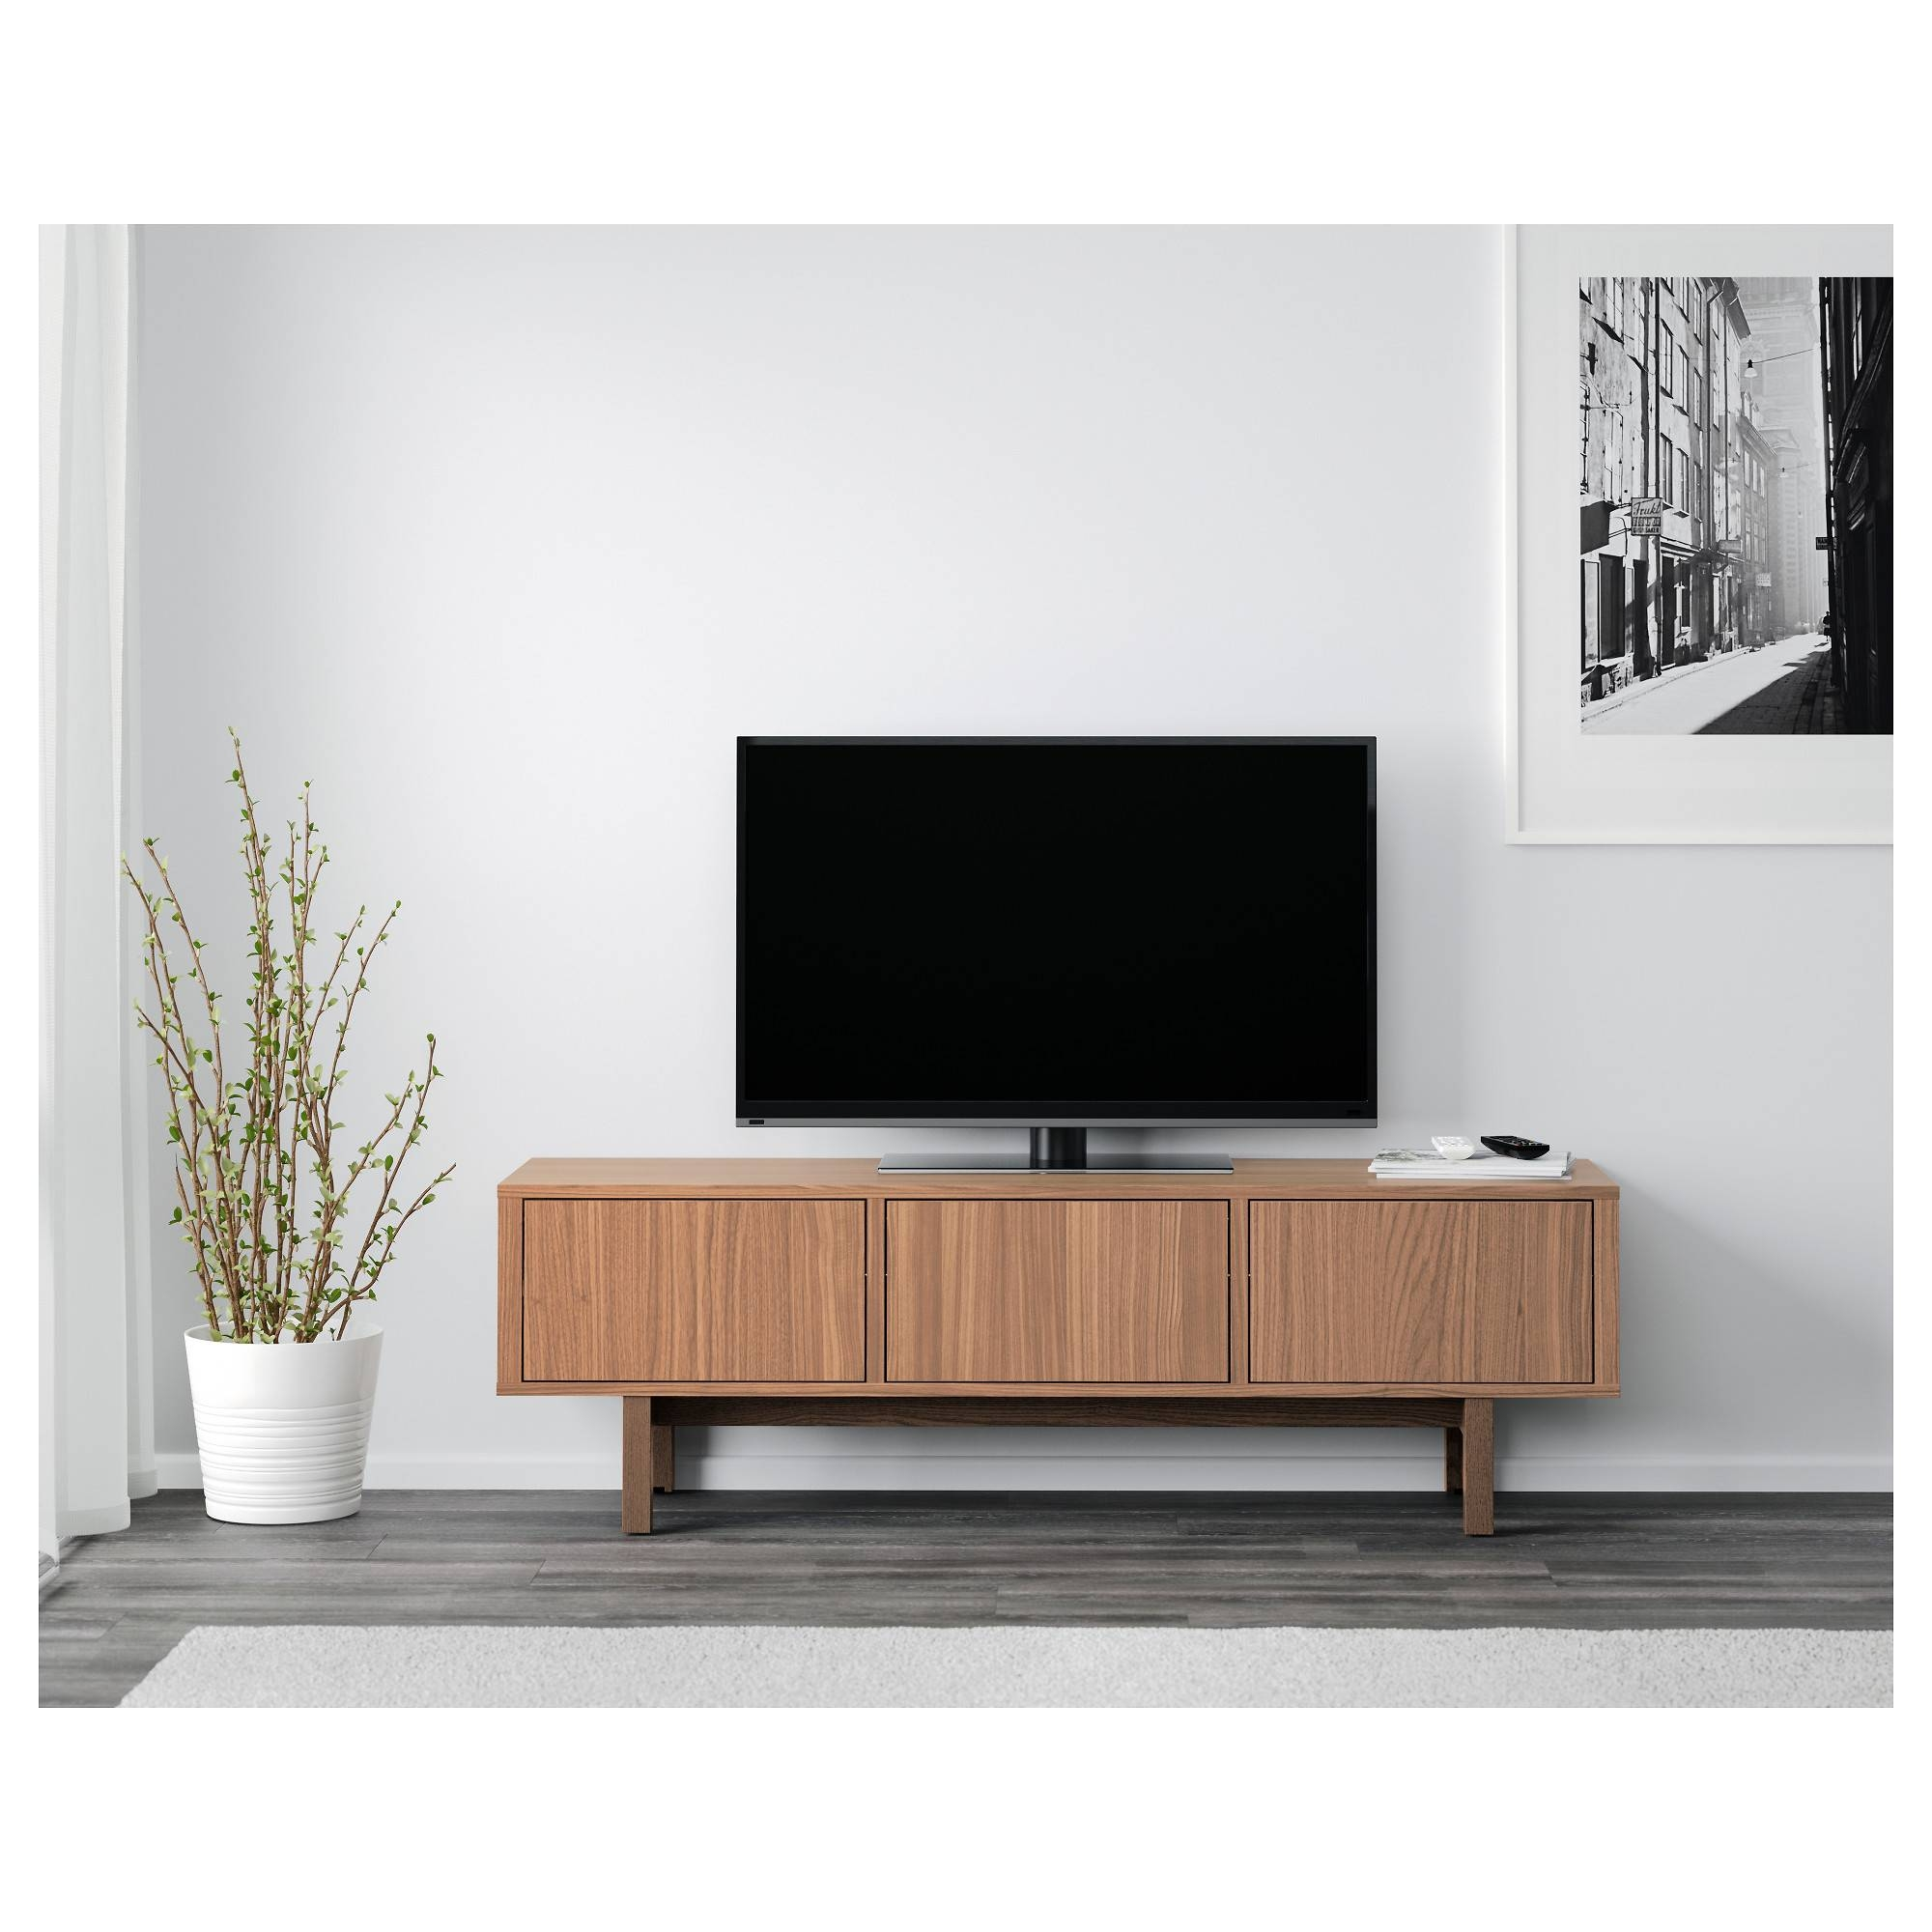 Stockholm Tv Bench Walnut Veneer 160X40 Cm - Ikea pertaining to Ikea Stockholm Sideboards (Image 15 of 15)